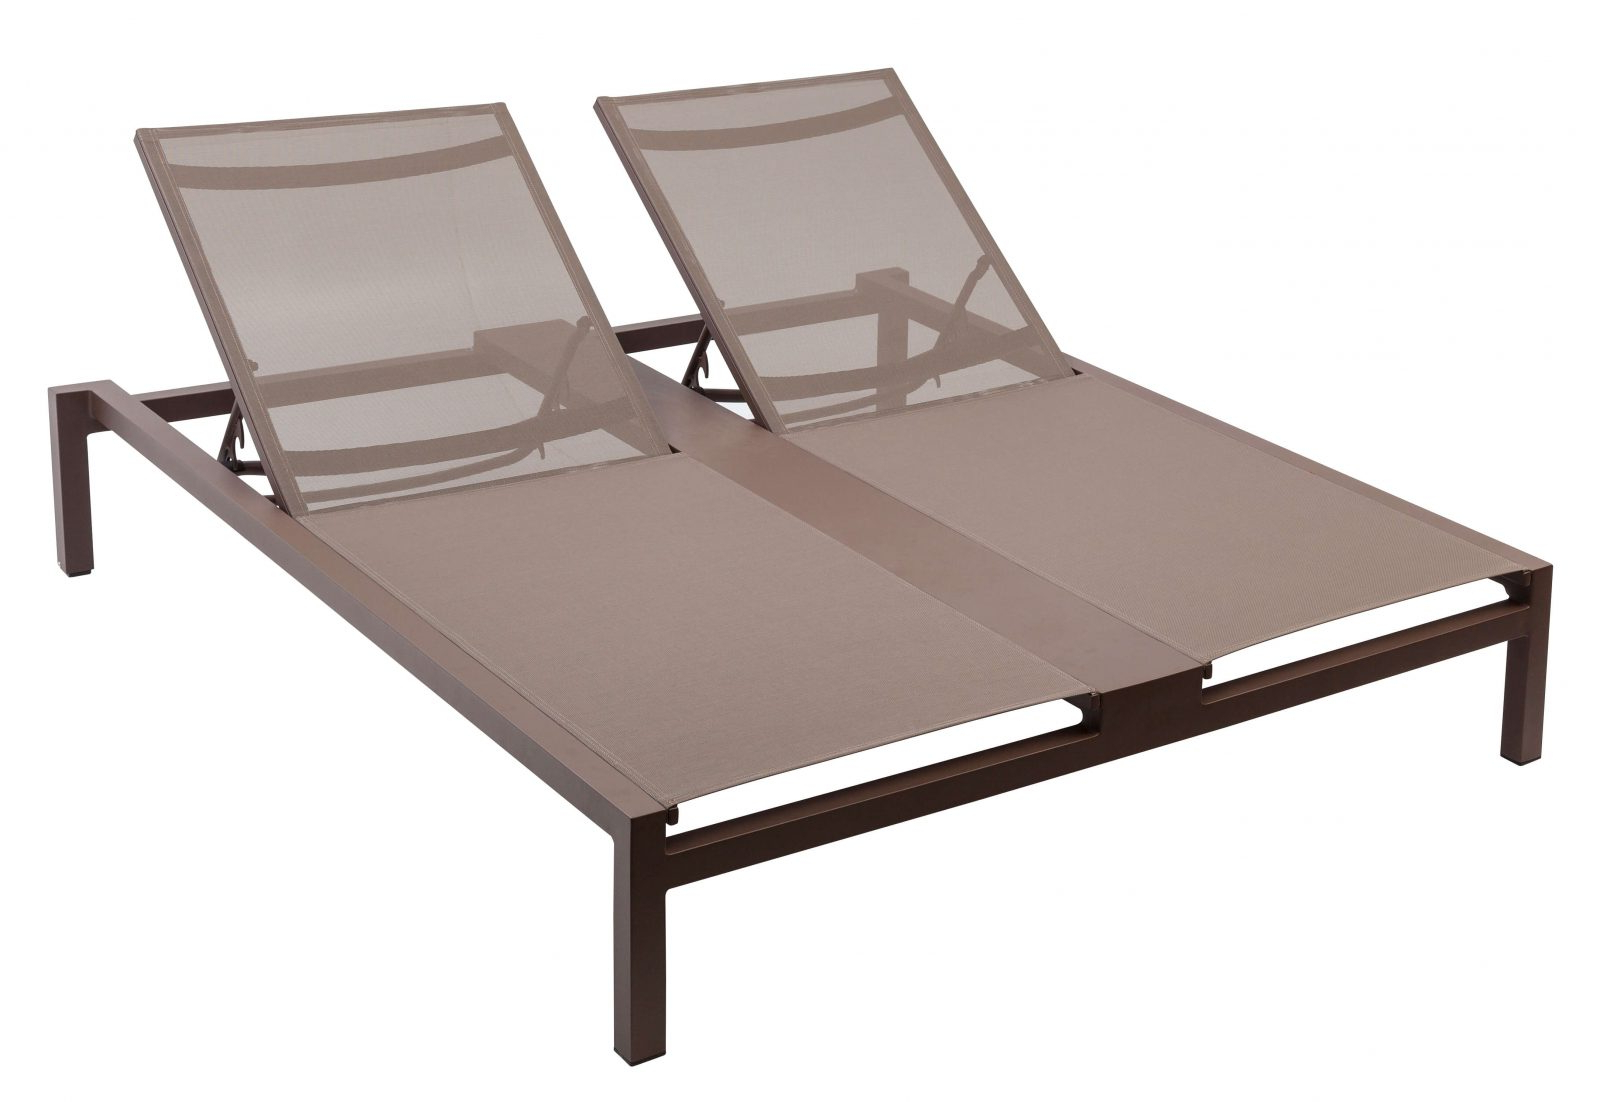 Buy Contract Mediterranean Double Sun Lounger Armless W Within Preferred Wicker Chaise Back Adjustable Patio Lounge Chairs With Wheels (View 19 of 25)